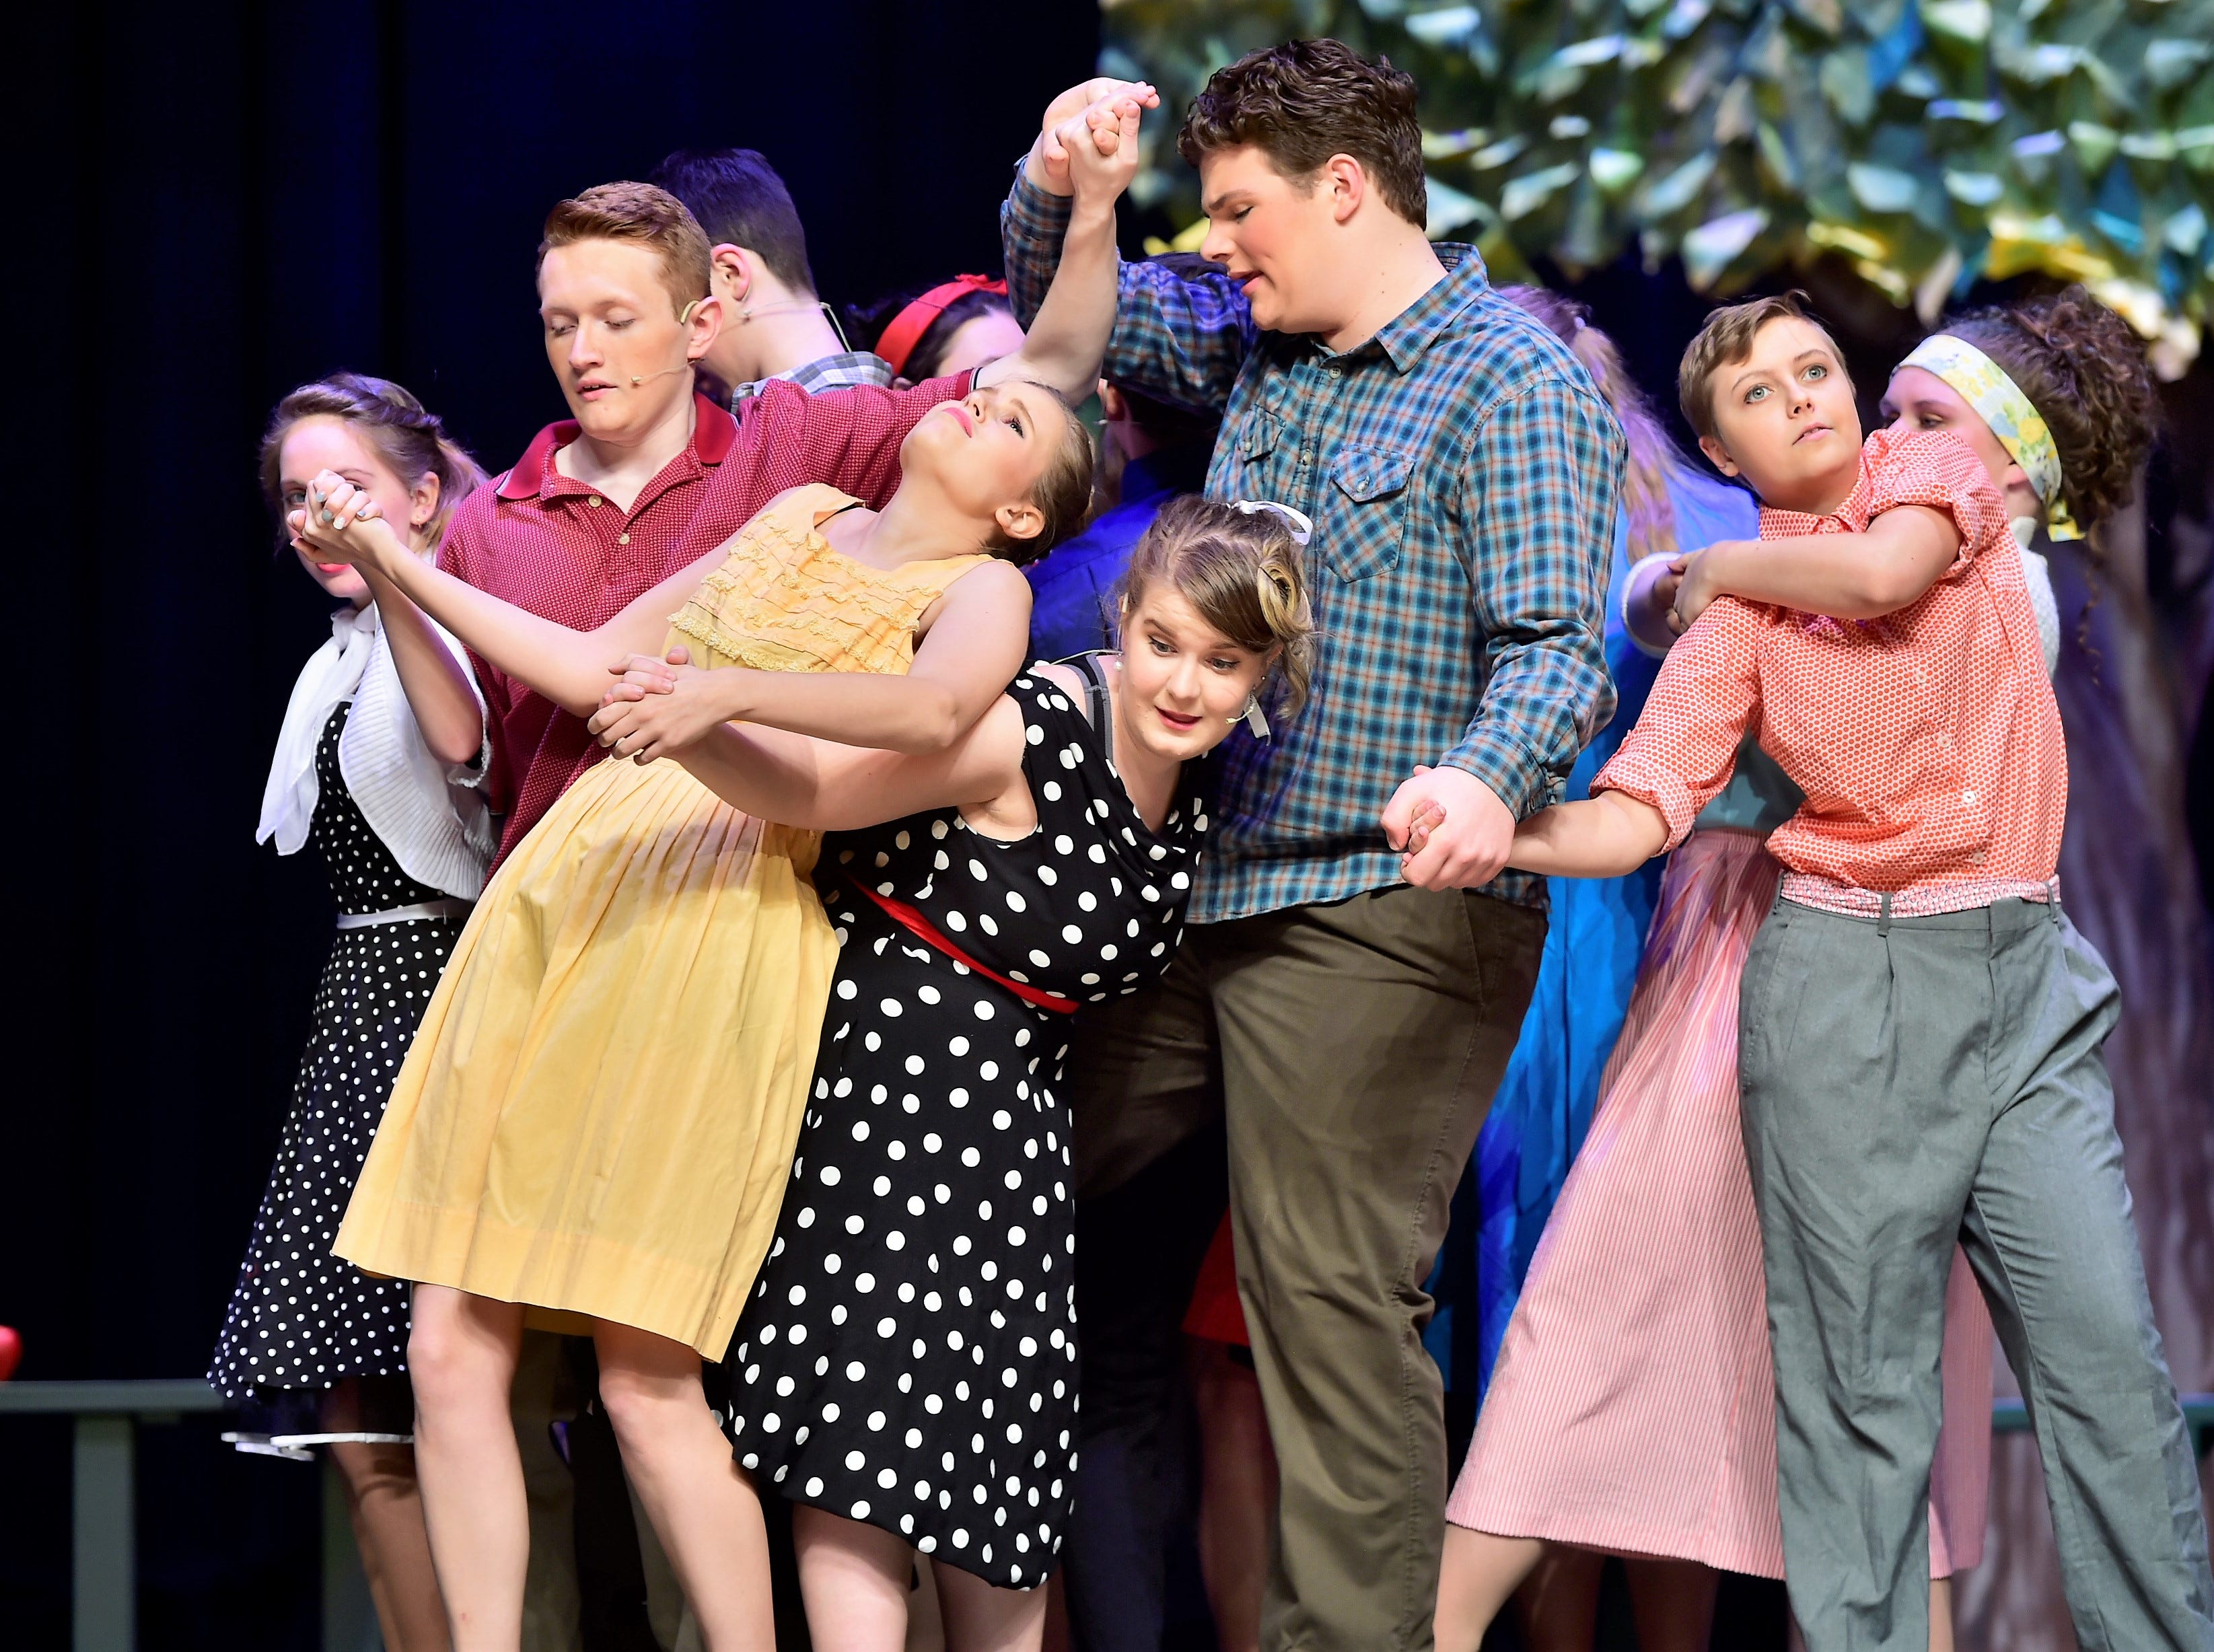 """Cast members tangle-up while rehearsing a dance number from """"The Pajama Game,"""" on Sunday, March 10, 2019, at Waynesboro Area Senior High School. The musical, based on the 1953 novel, """"7 1/2 Cents"""" by Richard Bissell, tells the story of a pajama factory where workers are fighting for a raise of 7 1/2 cents. Showtimes for Waynesboro Area School District's All-School Production of """"The Pajama Game"""" are 7 p.m. Friday and Saturday, March 15 and 16, and 2 p.m. Sunday, March 17 in the high school auditorium. For choose-your-seat tickets, $10 for adults and $6 for children under 12, go to https://washsmusic.ticketleap.com/the-pajama-game/. General admission tickets will also be sold at the door."""